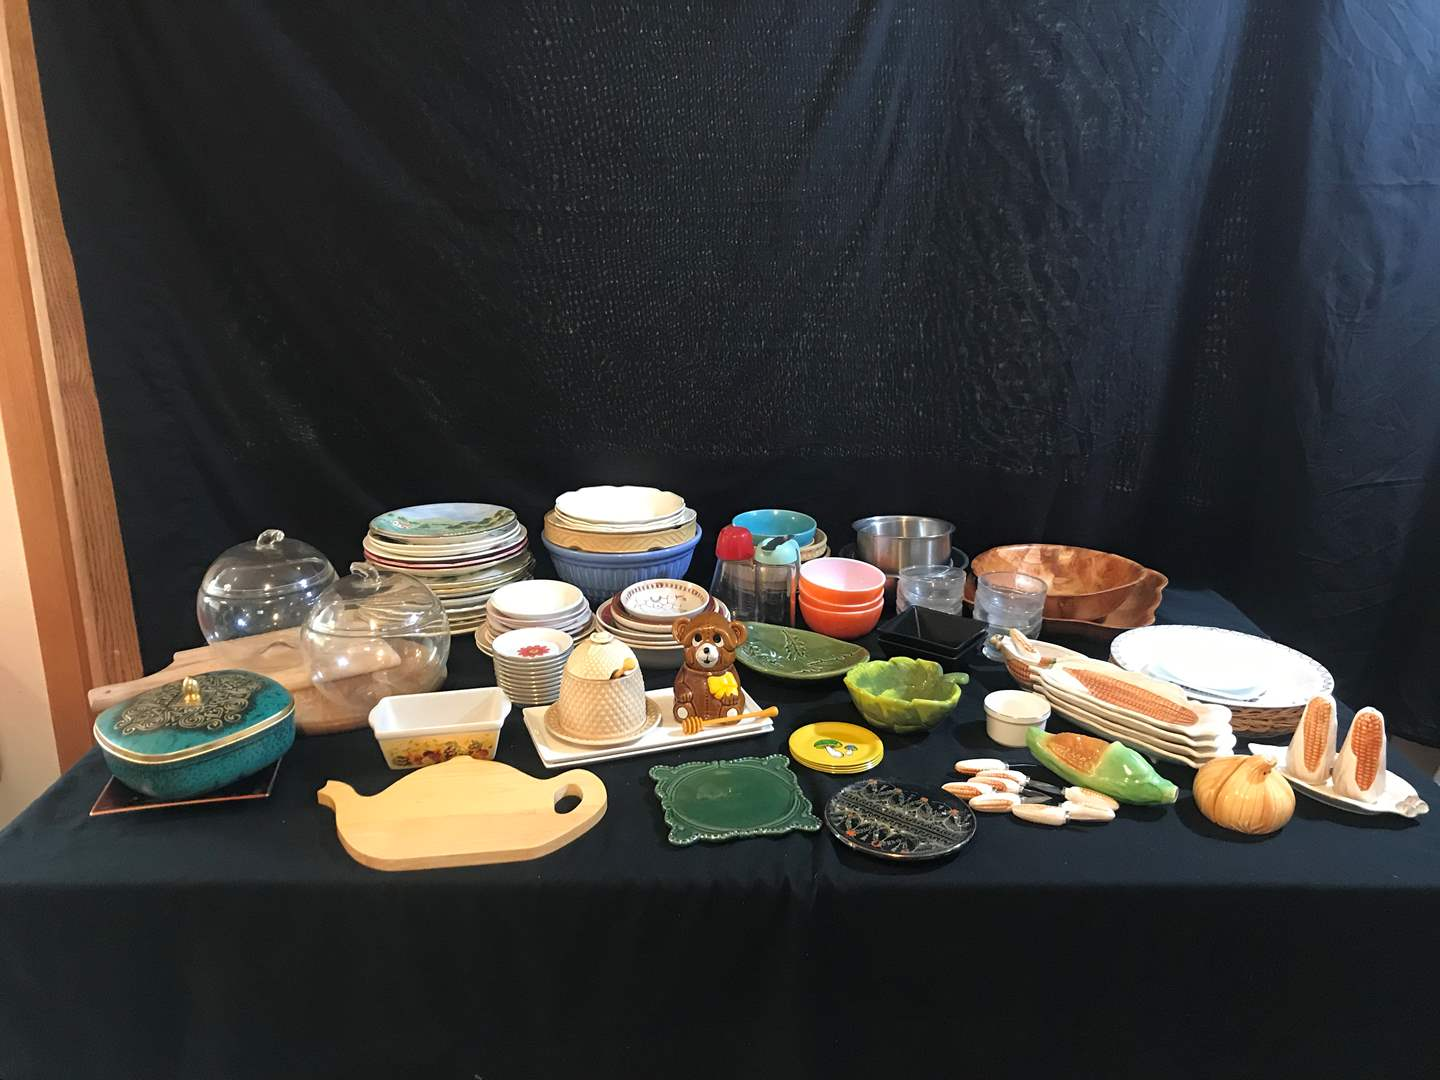 Lot # 76 - Misc. Kitchen Items: Plates, Bowls, Pie Plate, Serving Dishes, Honey Jars, Cutting Boards & More.. (main image)